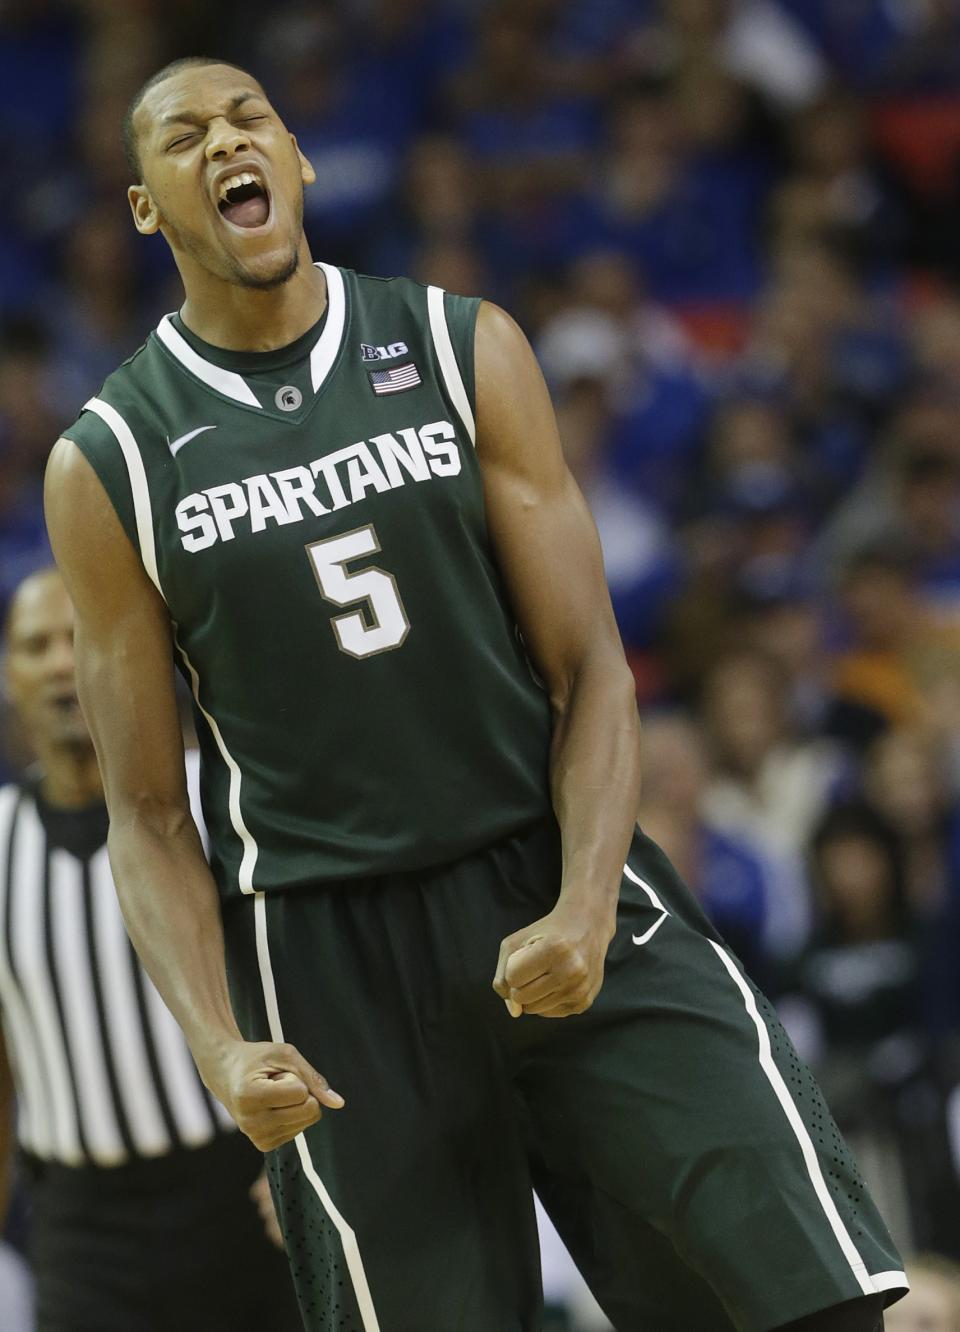 Michigan State center Adreian Payne (5) reacts during the second half of an NCAA college basketball game against Kansas at the Georgia Dome in Atlanta Tuesday, Nov. 13, 2012. Michigan State beat Kansas 67-64. (AP Photo/Dave Martin)